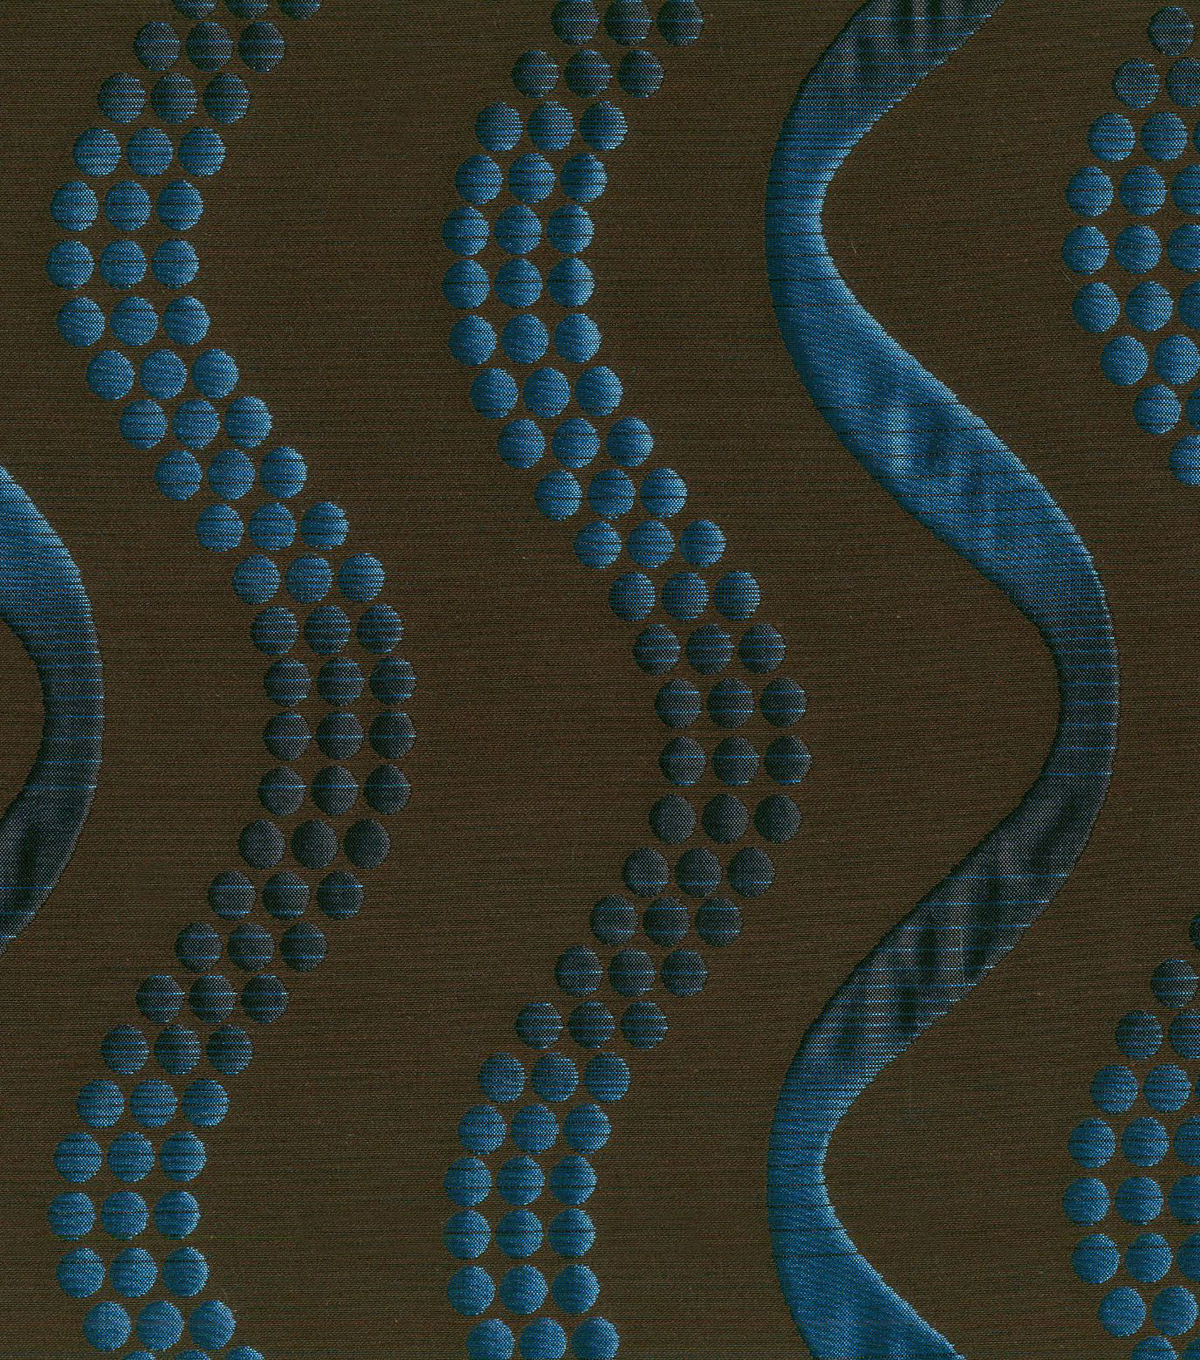 Home Decor 8\u0022x8\u0022 Fabric Swatch-Elite Pisa Cocoa